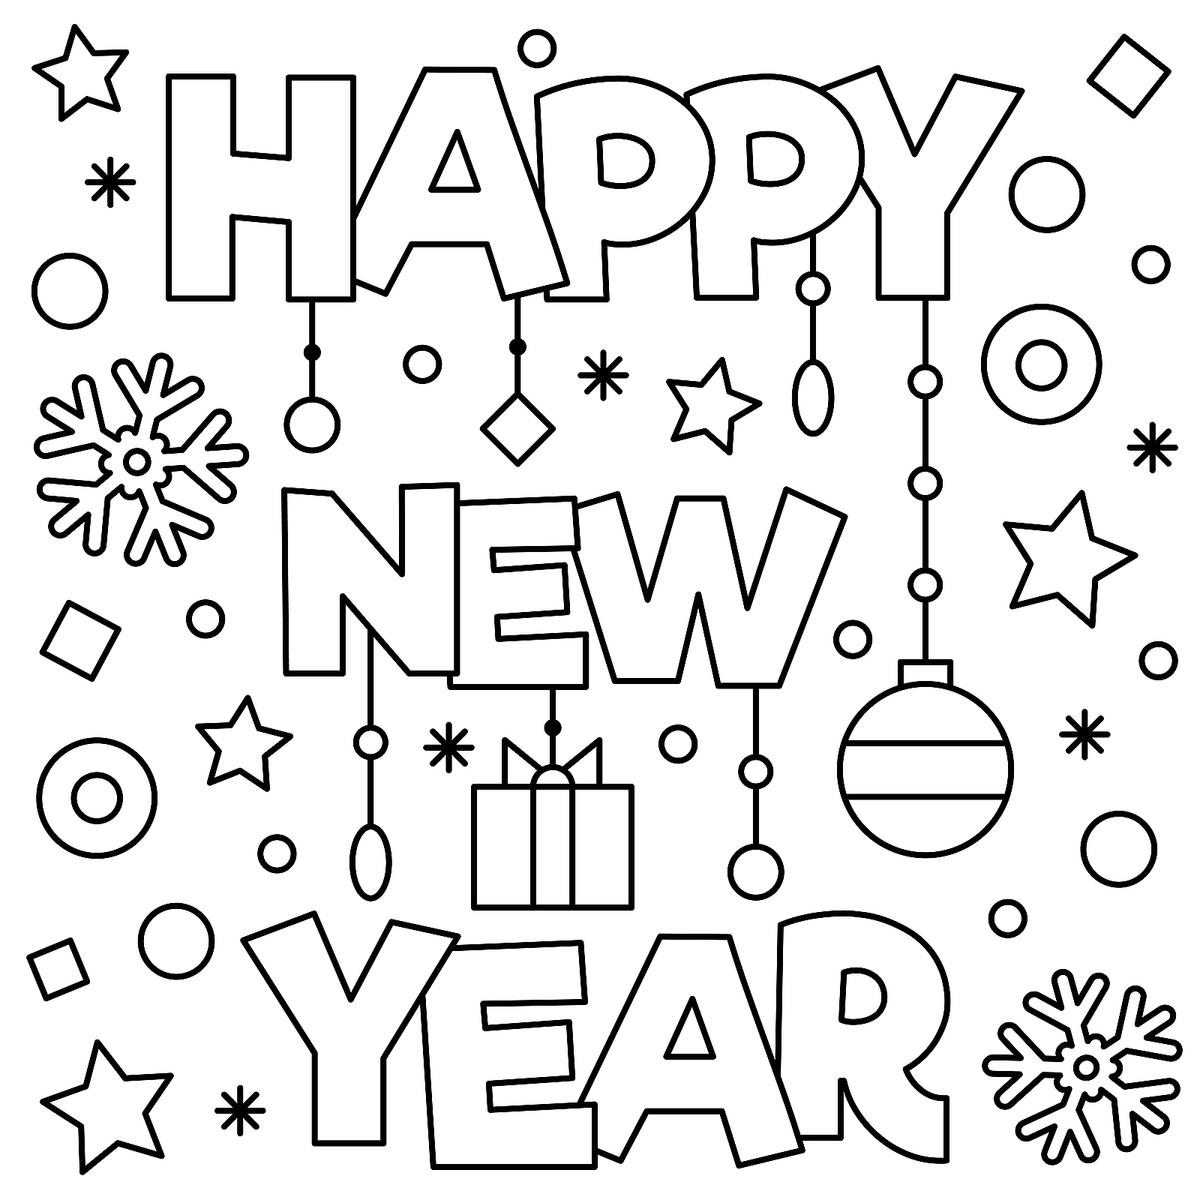 january coloring pages new year january coloring pages printable fun to help january pages coloring